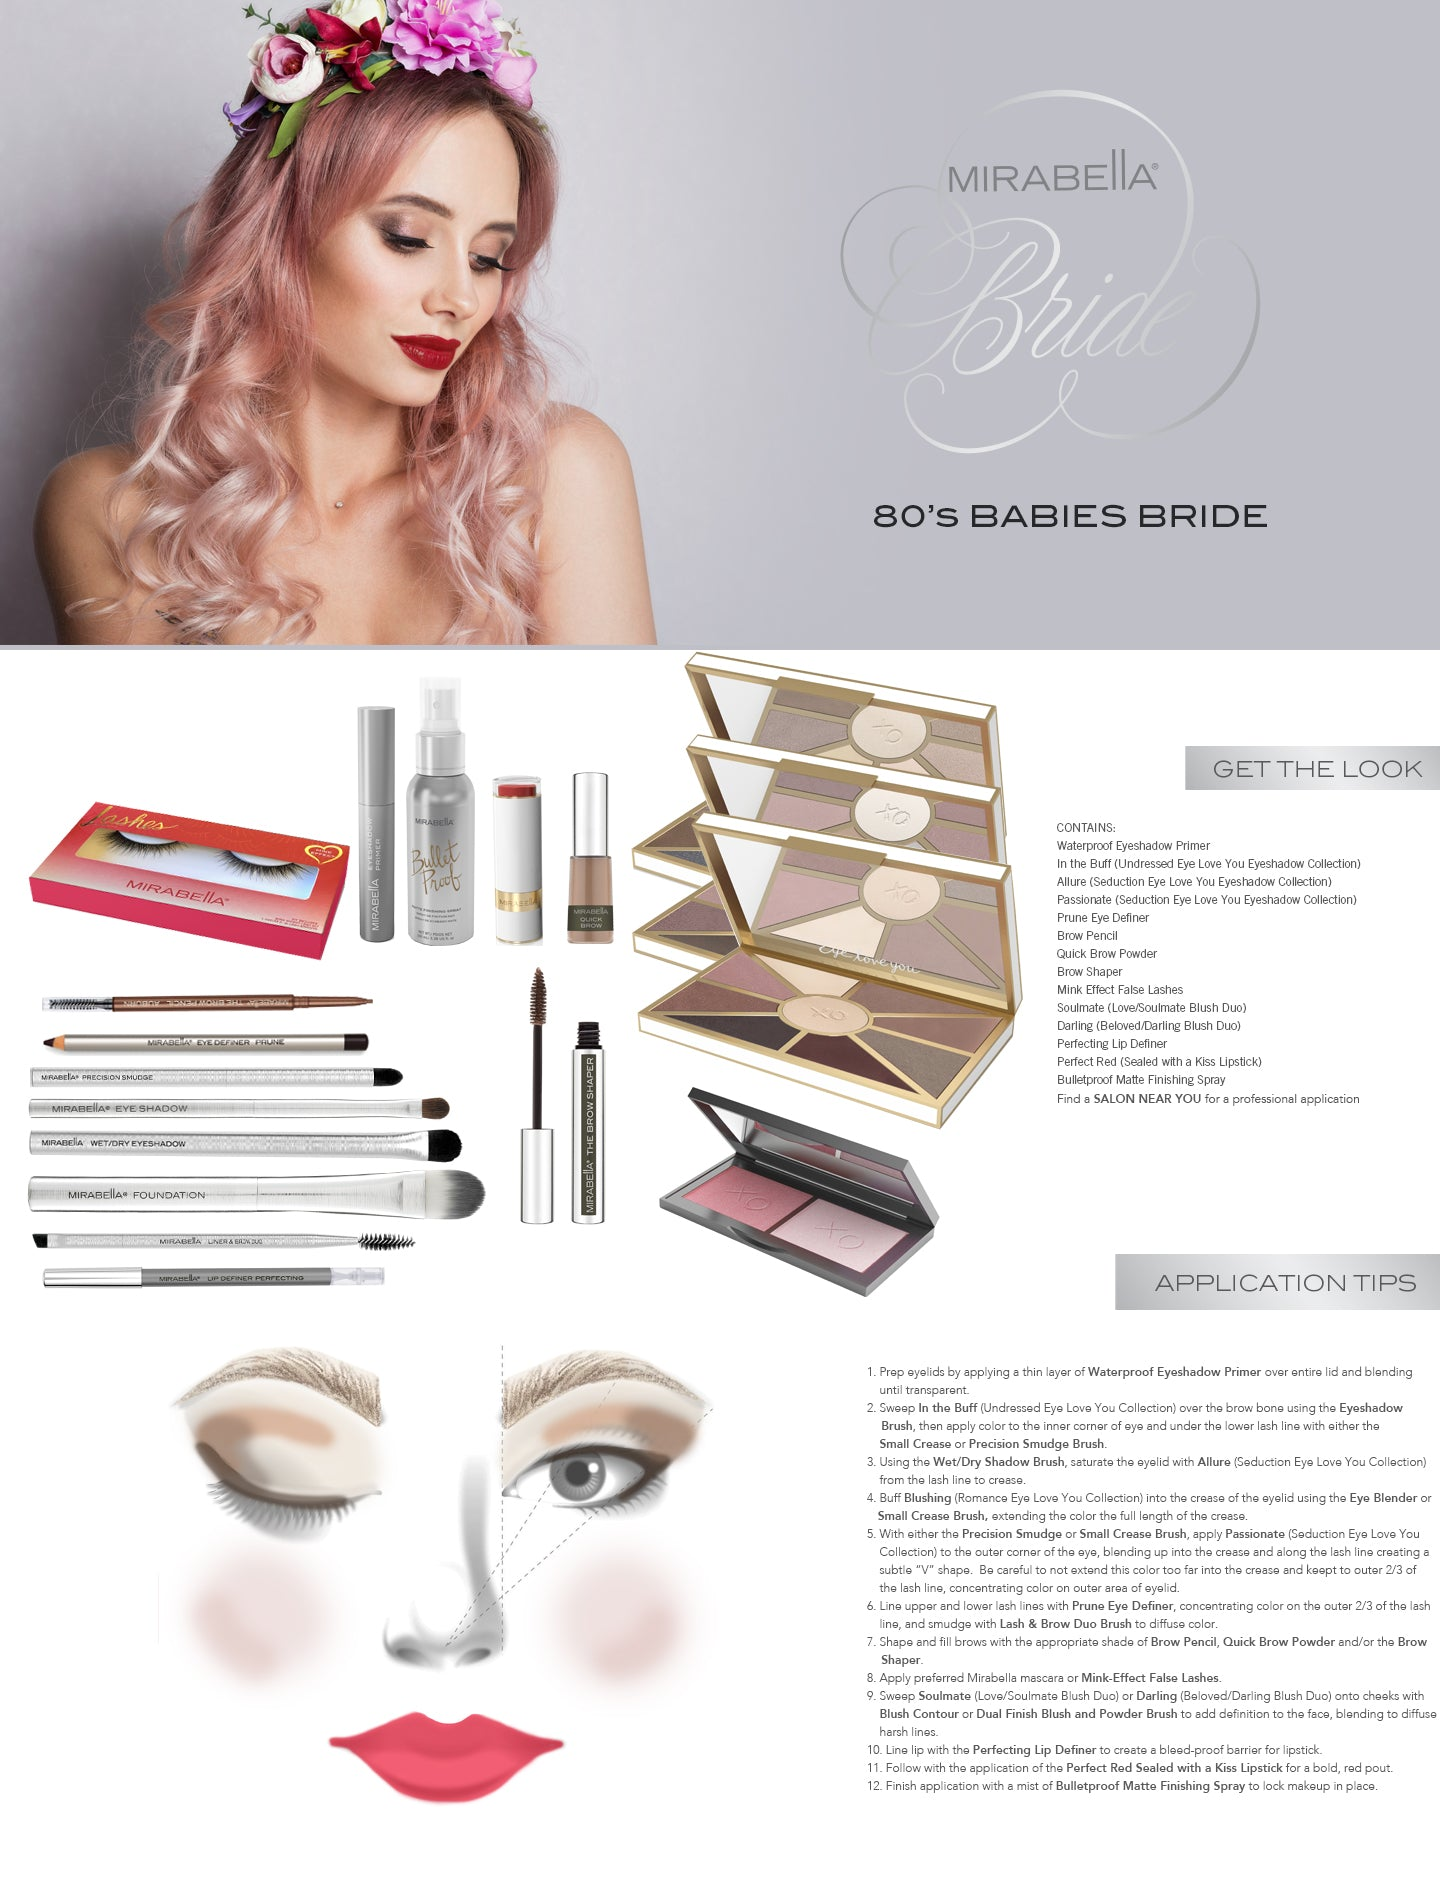 80's Baby Bride, Mirabella Beauty Cosmetics